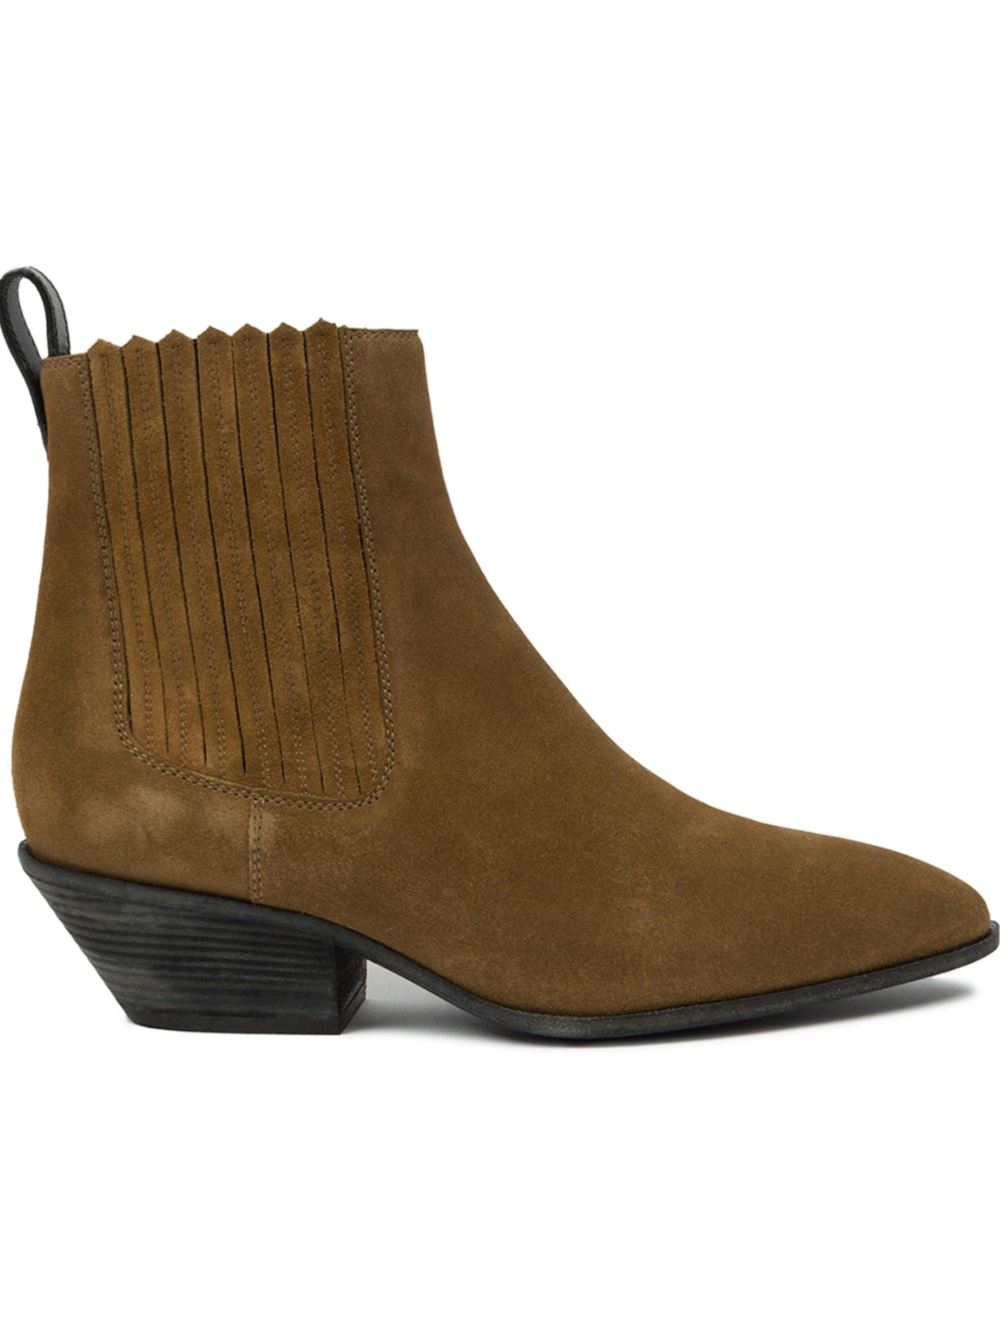 giuseppe zanotti western suede ankle boots in brown lyst